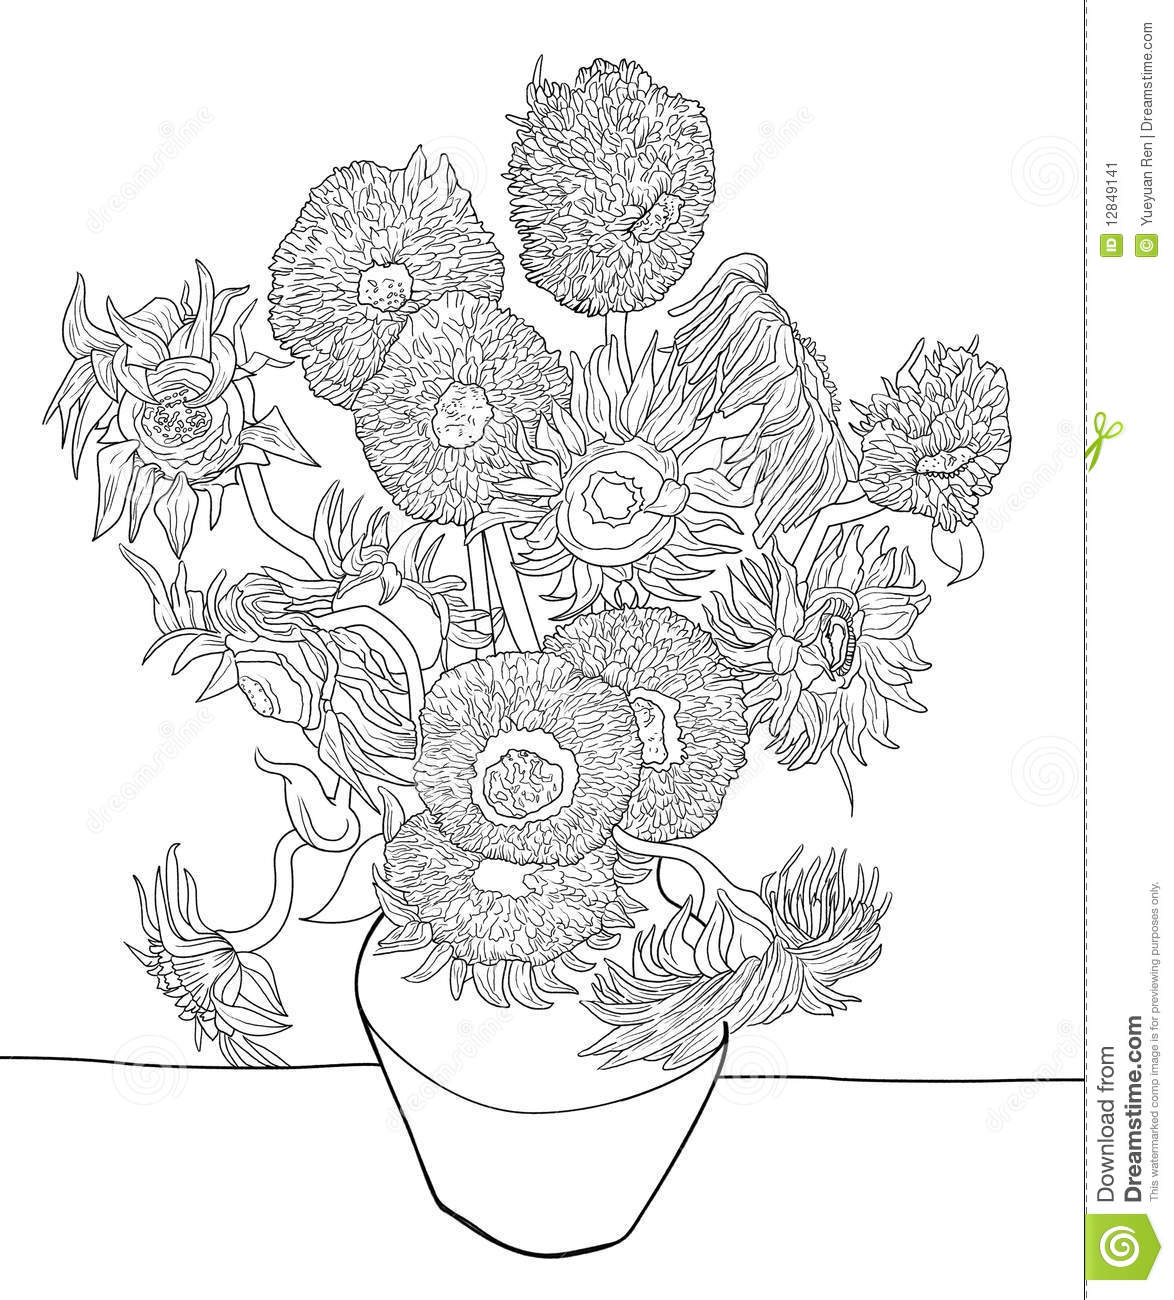 sunflower sketch by van gogh stock illustration image